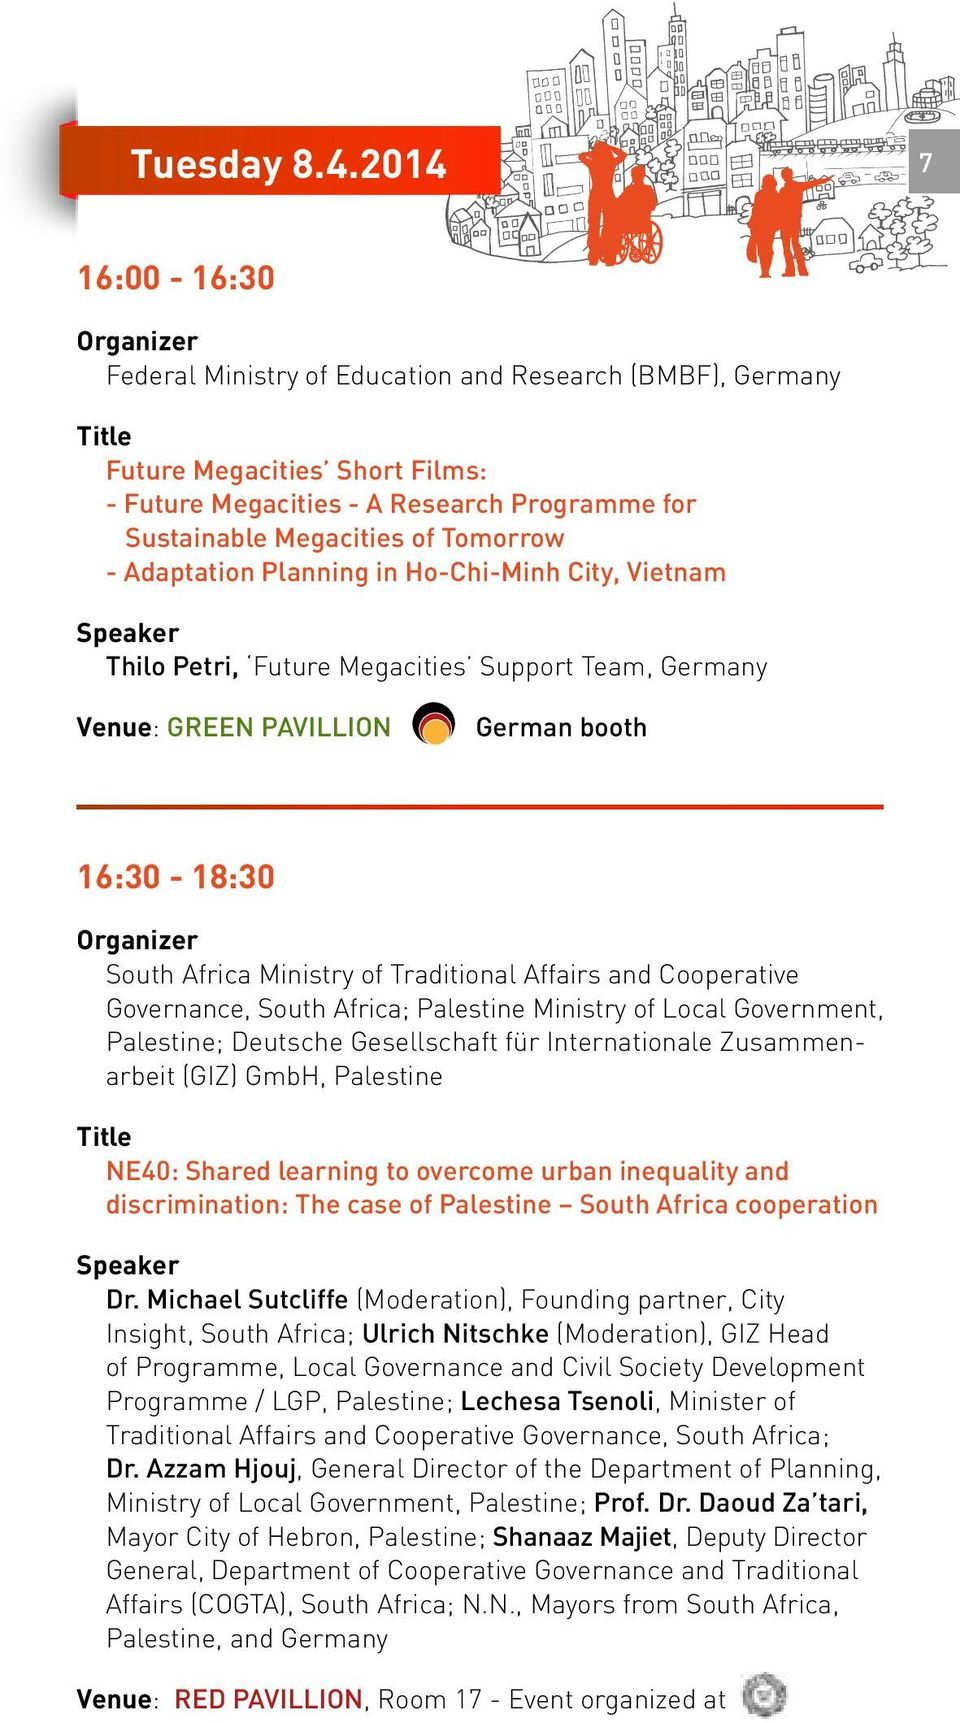 Adaptation Planning in Ho-Chi-Minh City, Vietnam Thilo Petri, Future Megacities Support Team, Germany 16:30-18:30 South Africa Ministry of Traditional Affairs and Cooperative Governance, South